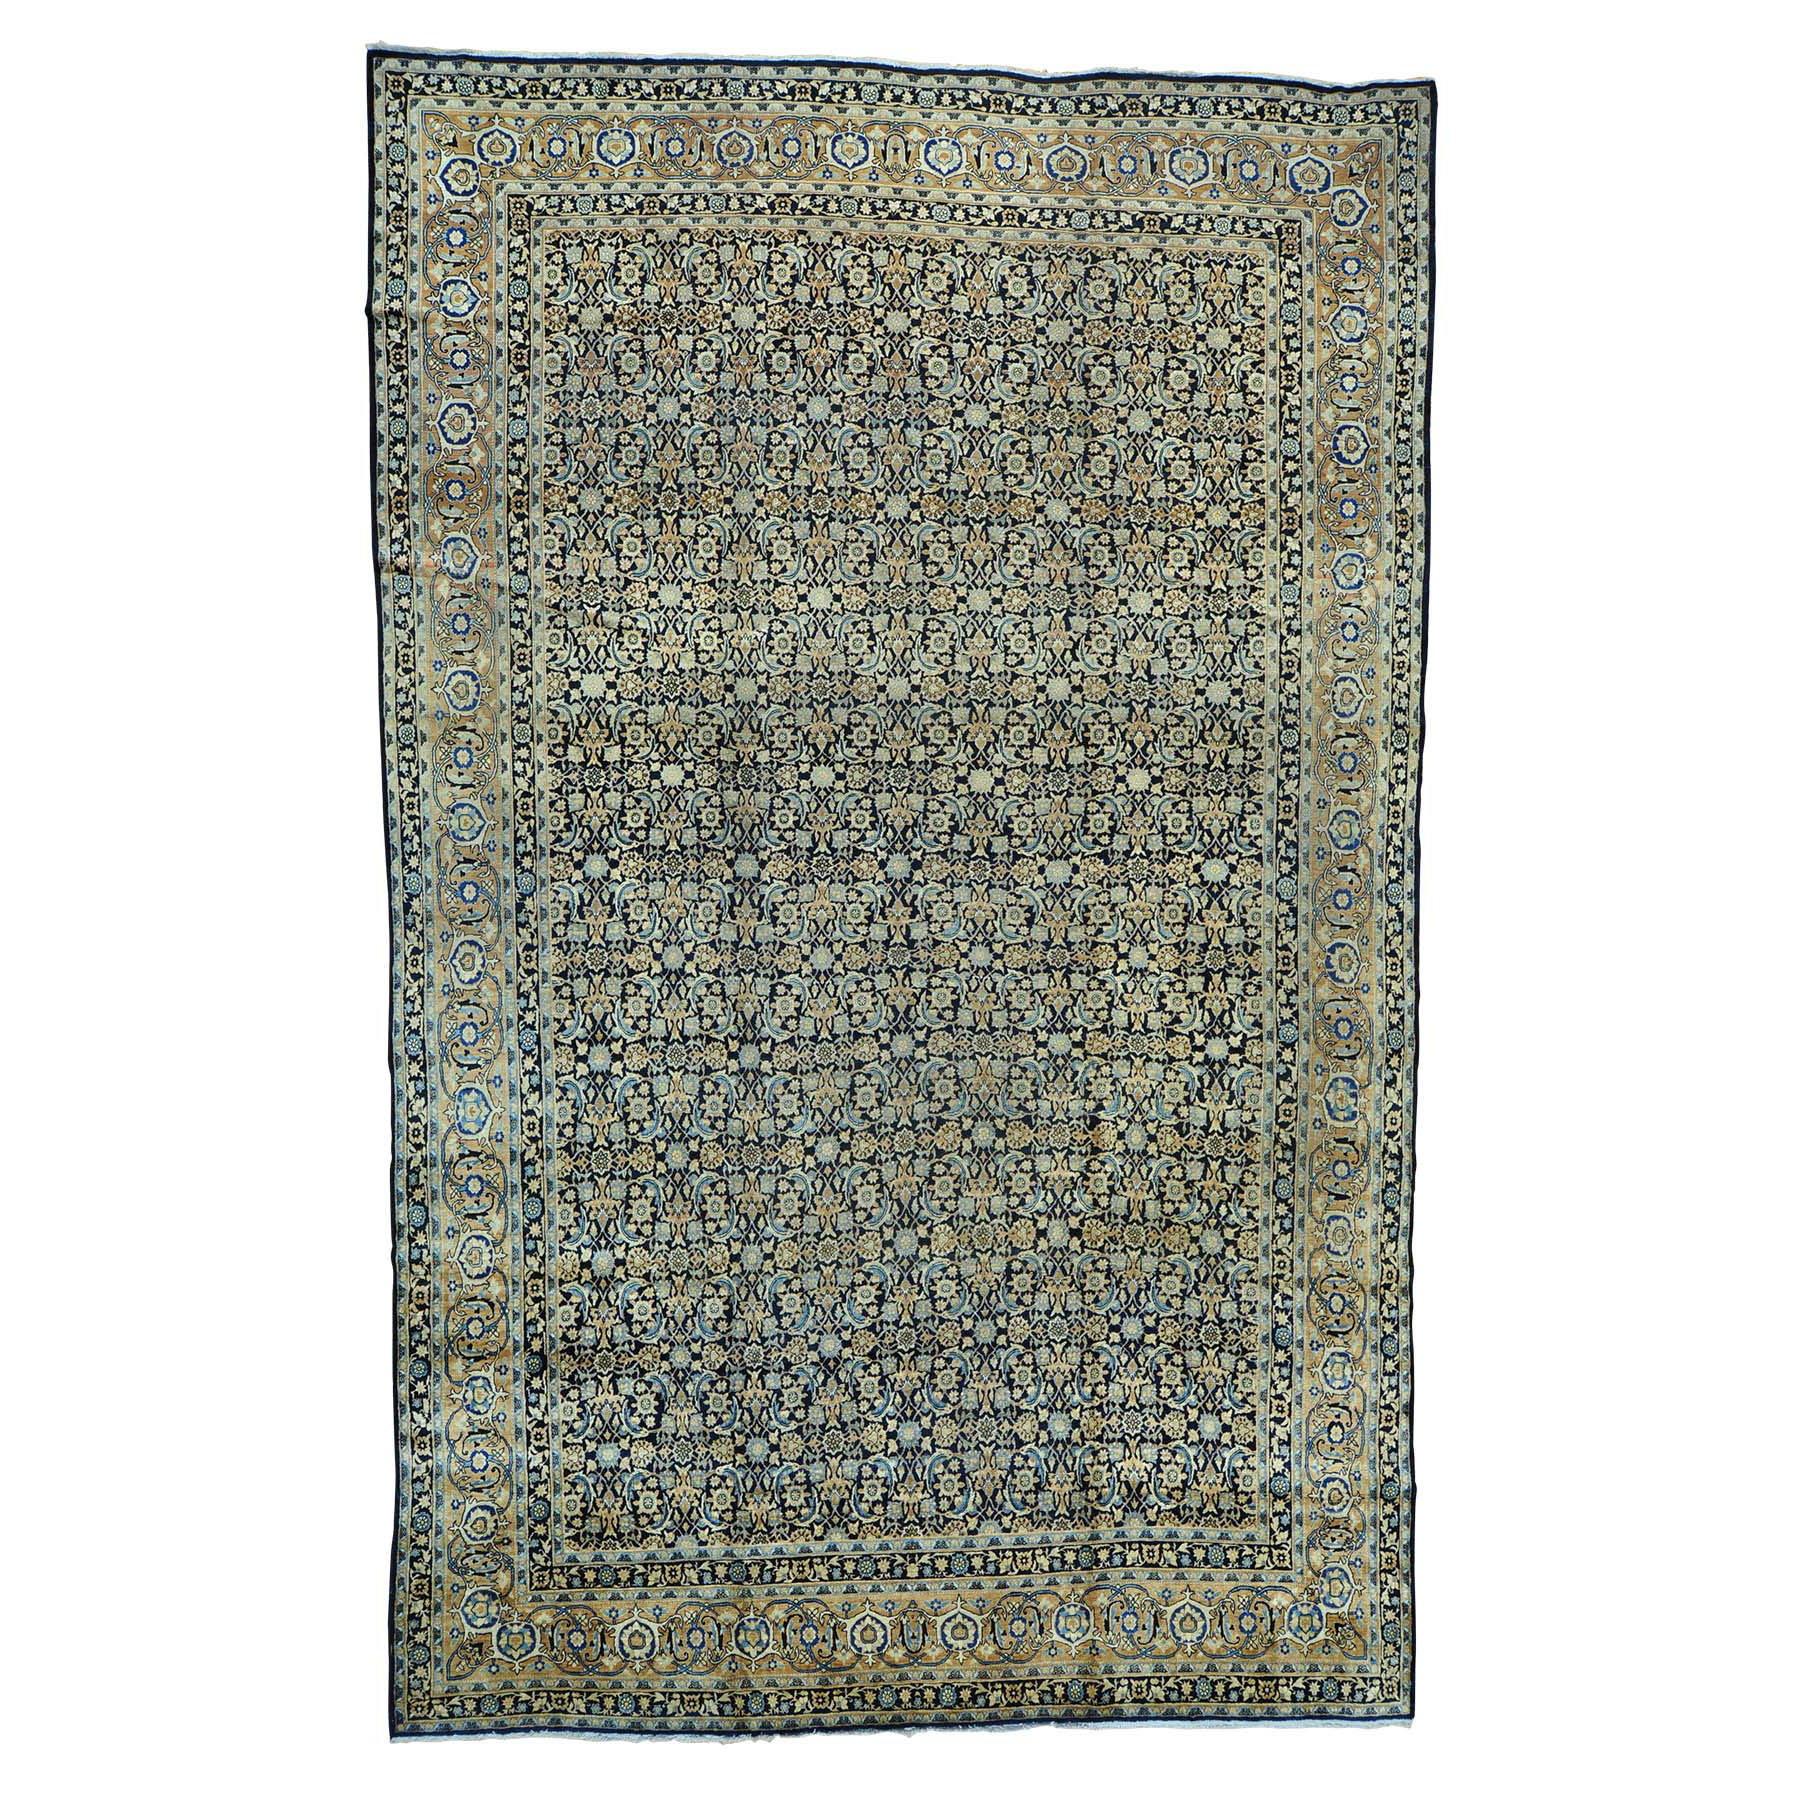 Antique Collection Hand Knotted Blue Rug No: 152852